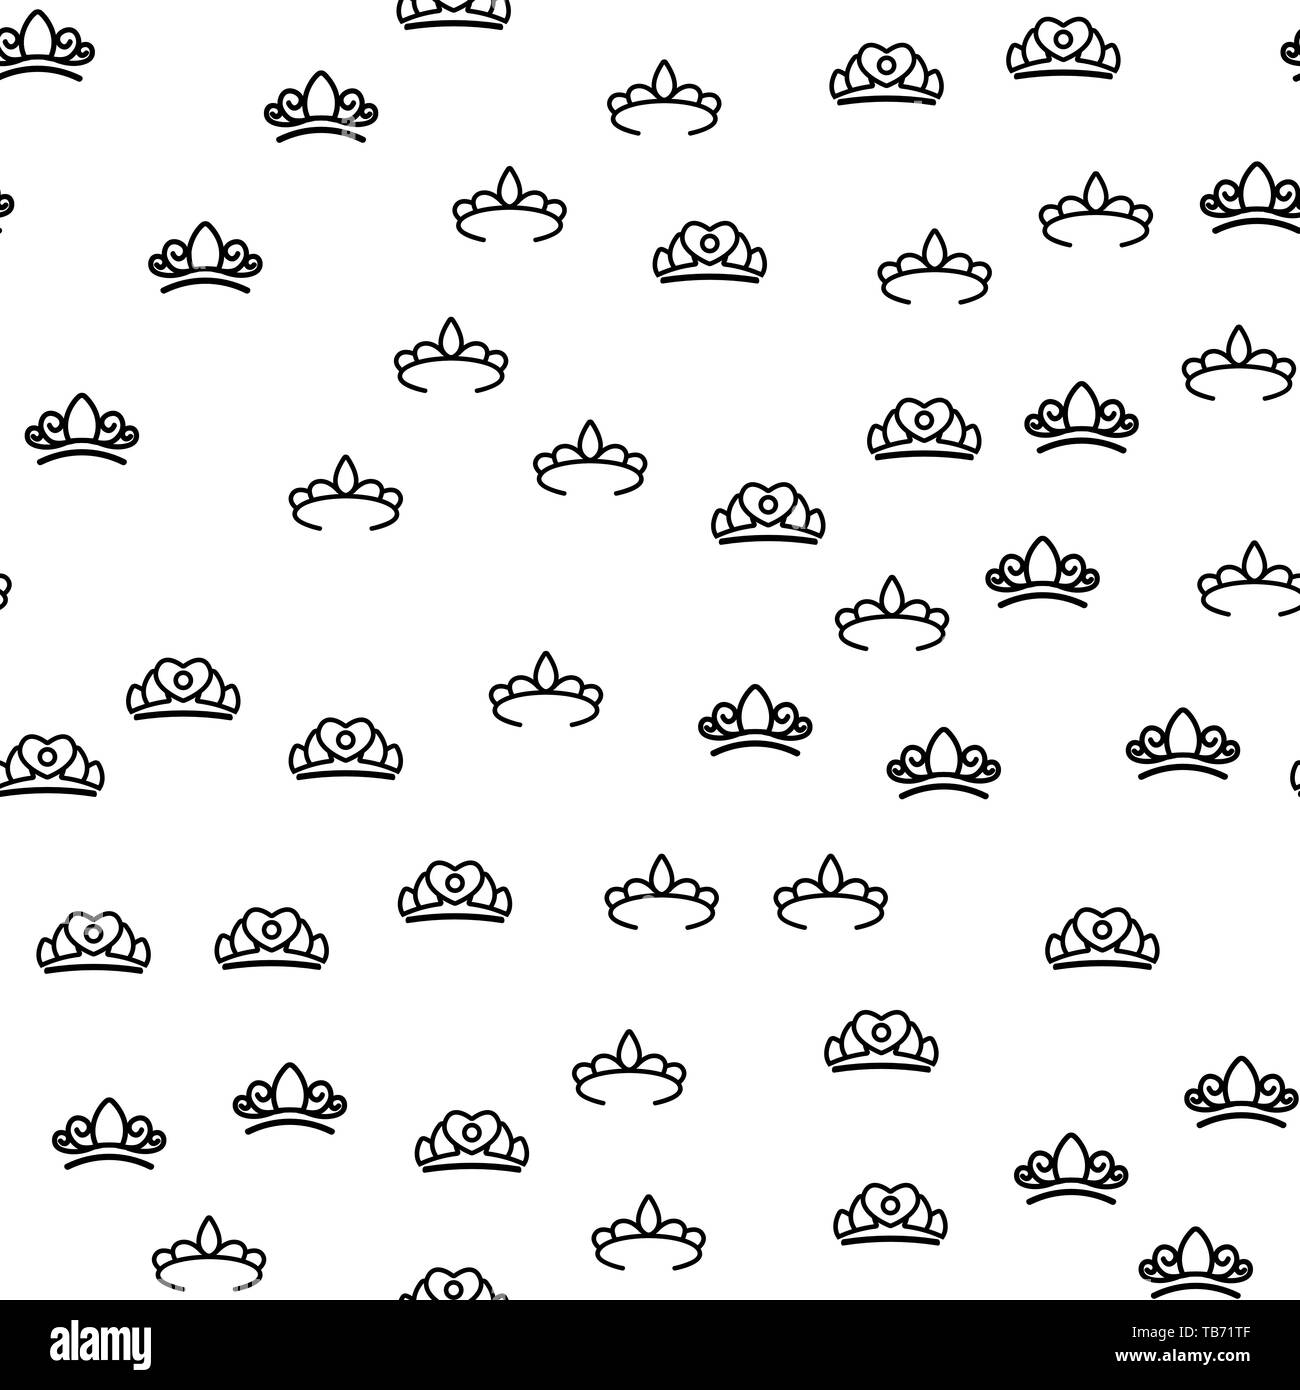 Jewelry Aristocracy Crowns Seamless Pattern Vector. Fashion Aristocraty Queen Or Princess Tiara Monochrome Texture Icons. Classic Symbol Of Monarch Au - Stock Image